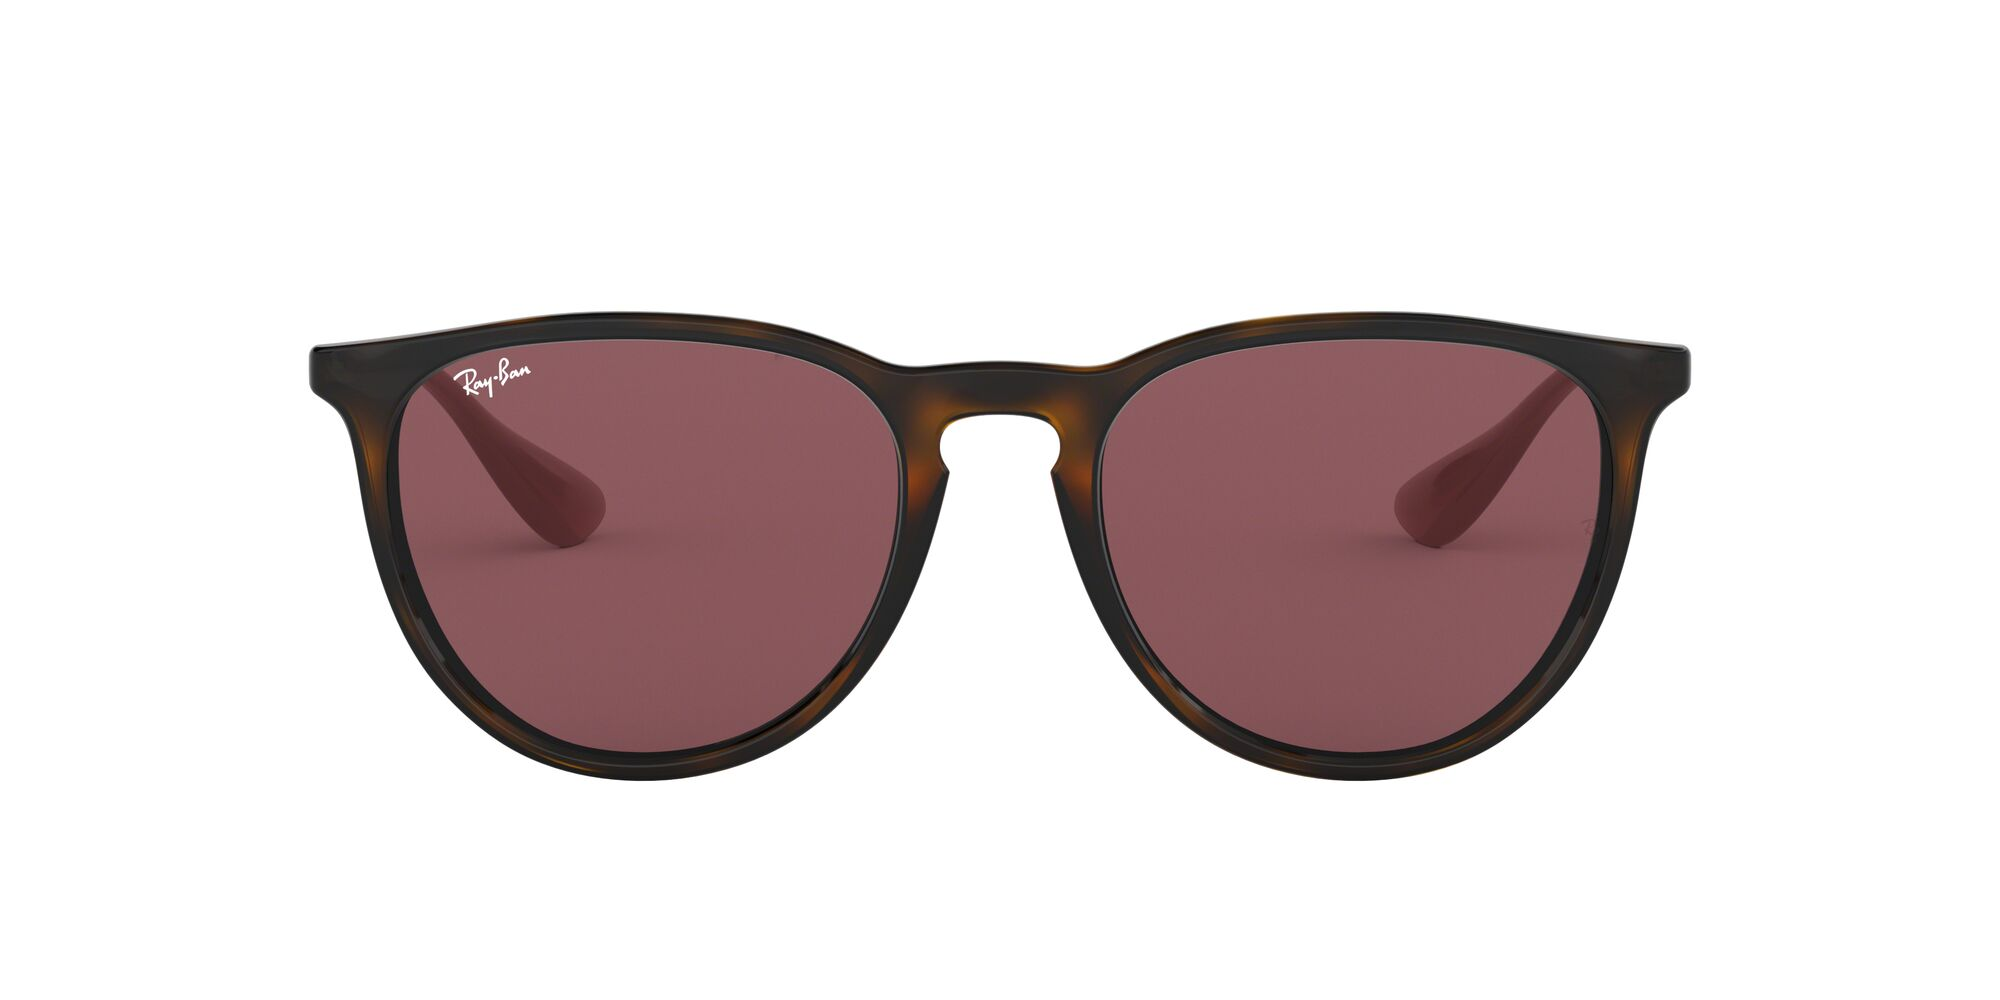 Front Ray-Ban Ray-Ban 0RB4171 639175 54/18 Bruin/Paars